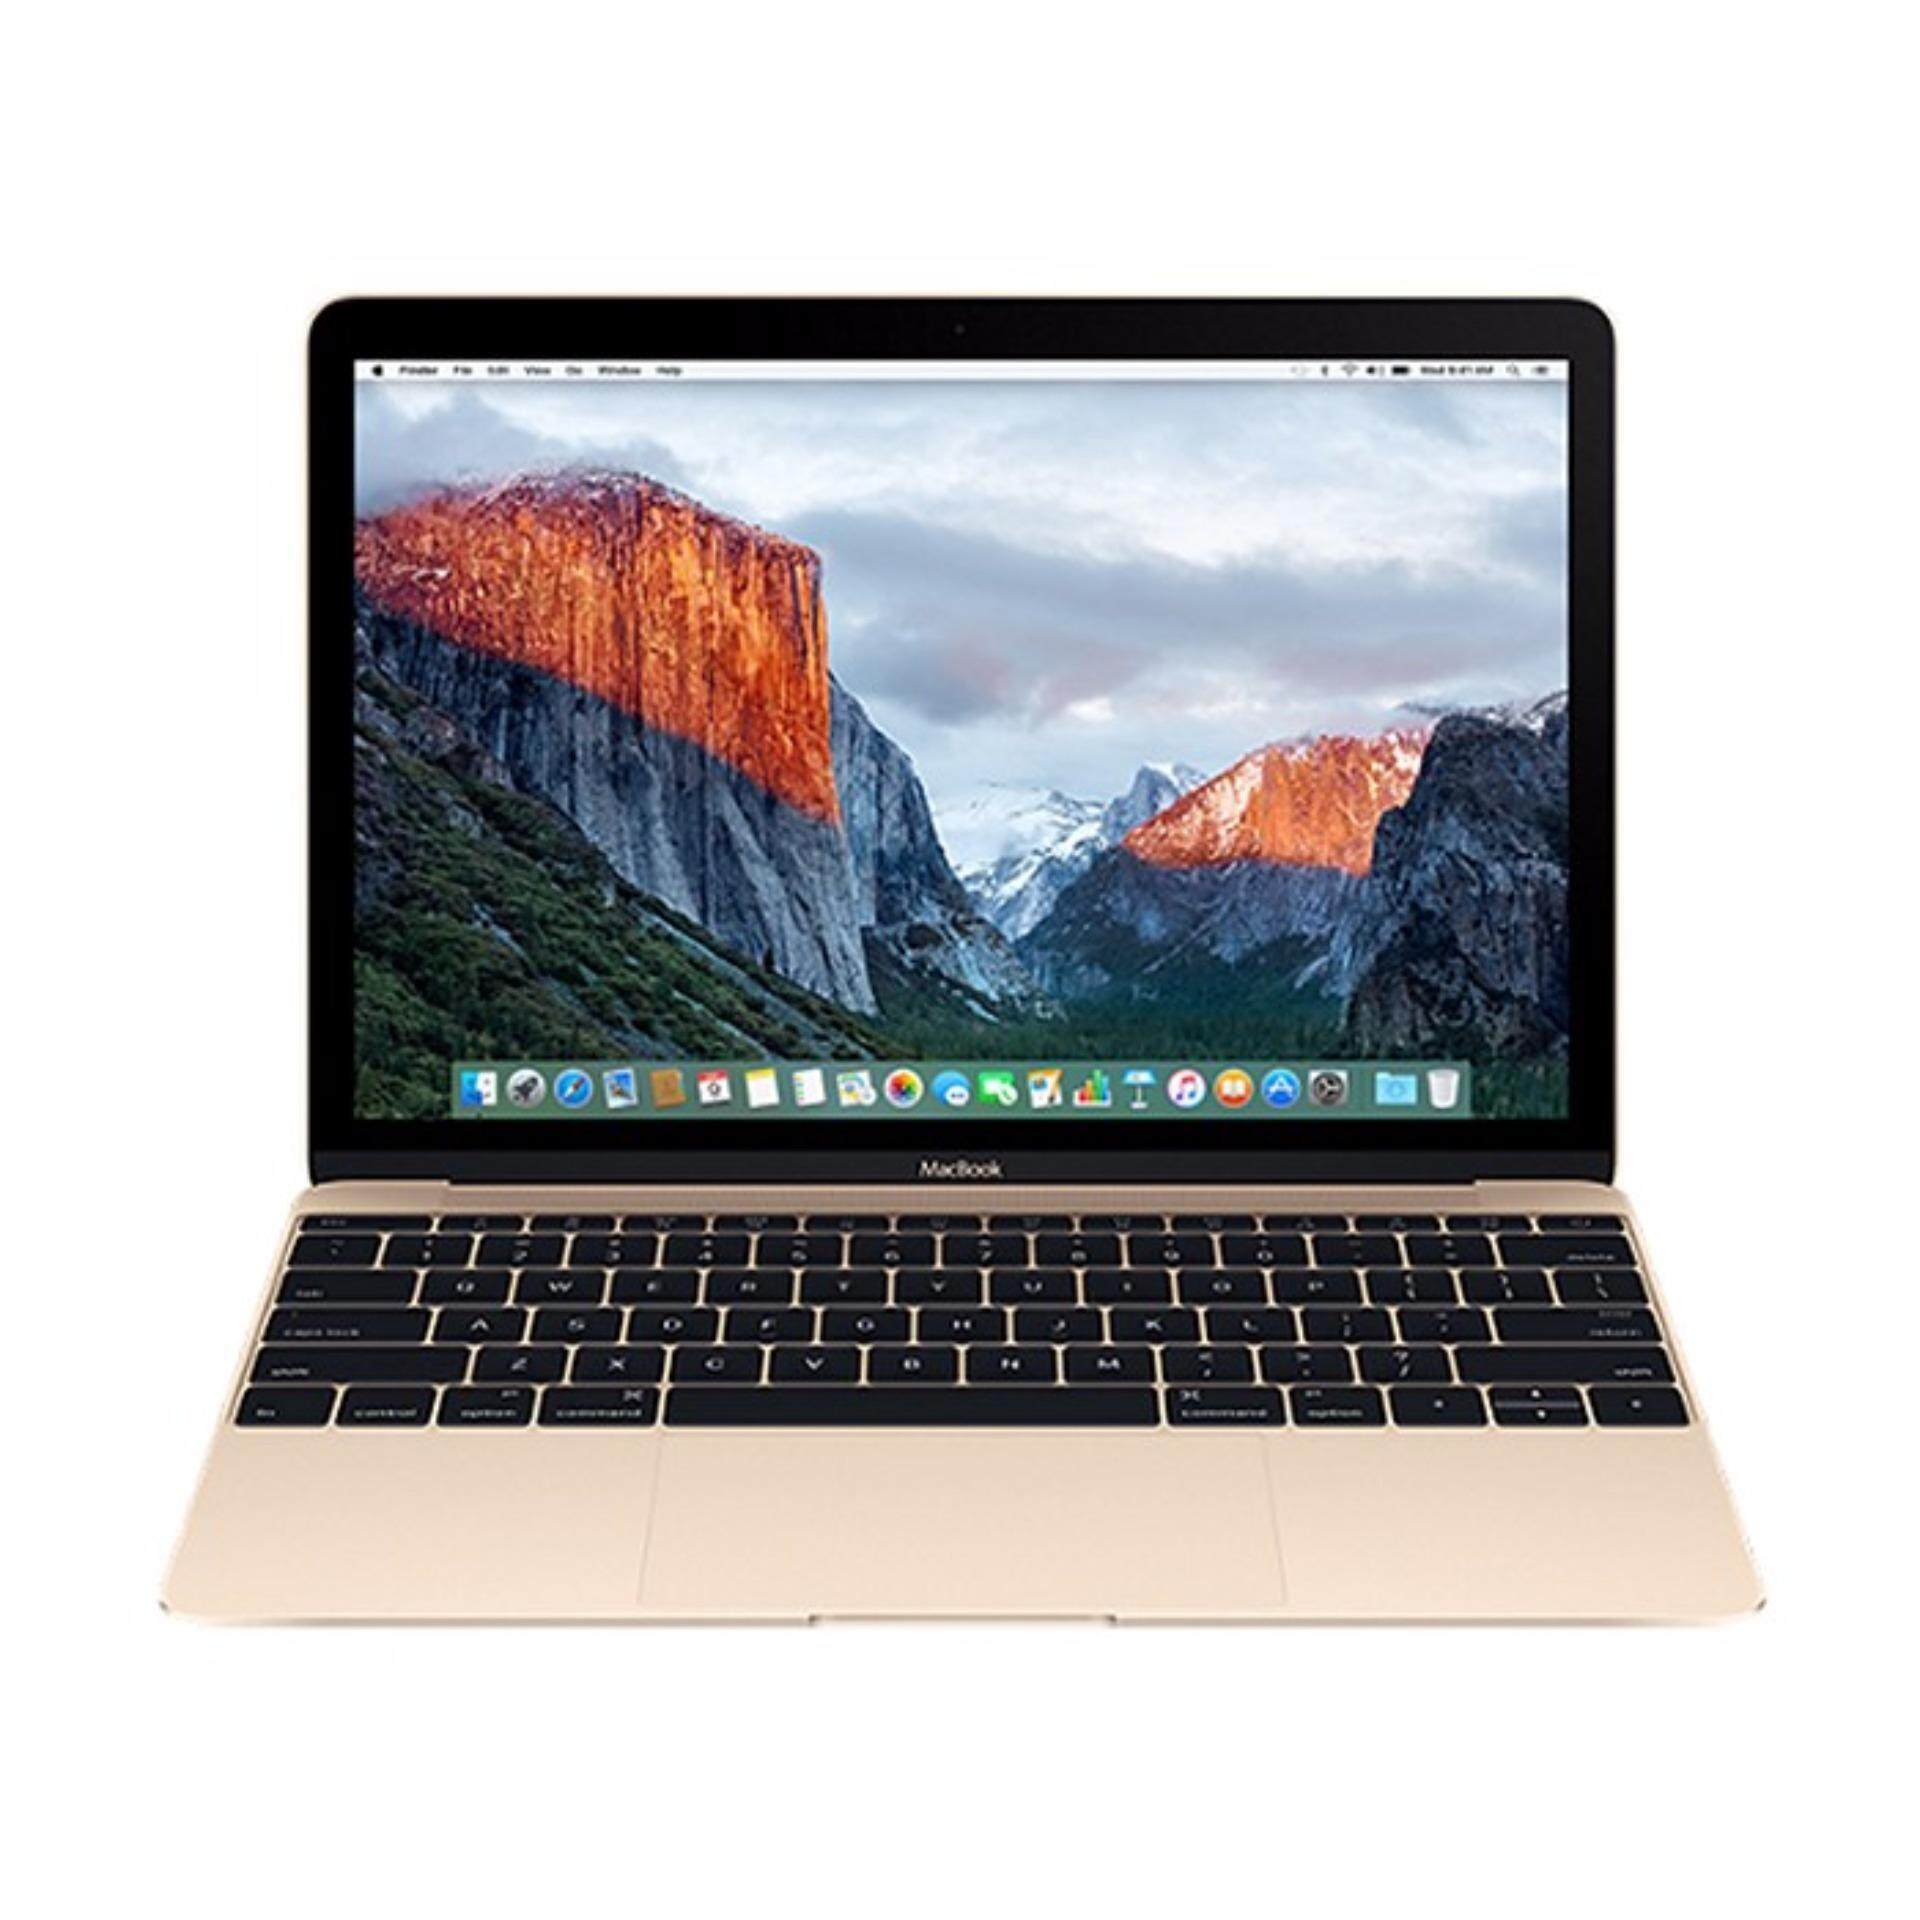 Apple Macbook 12/Intel m3/8GB/256GB (MLHE2ZP/A) - Gold Malaysia